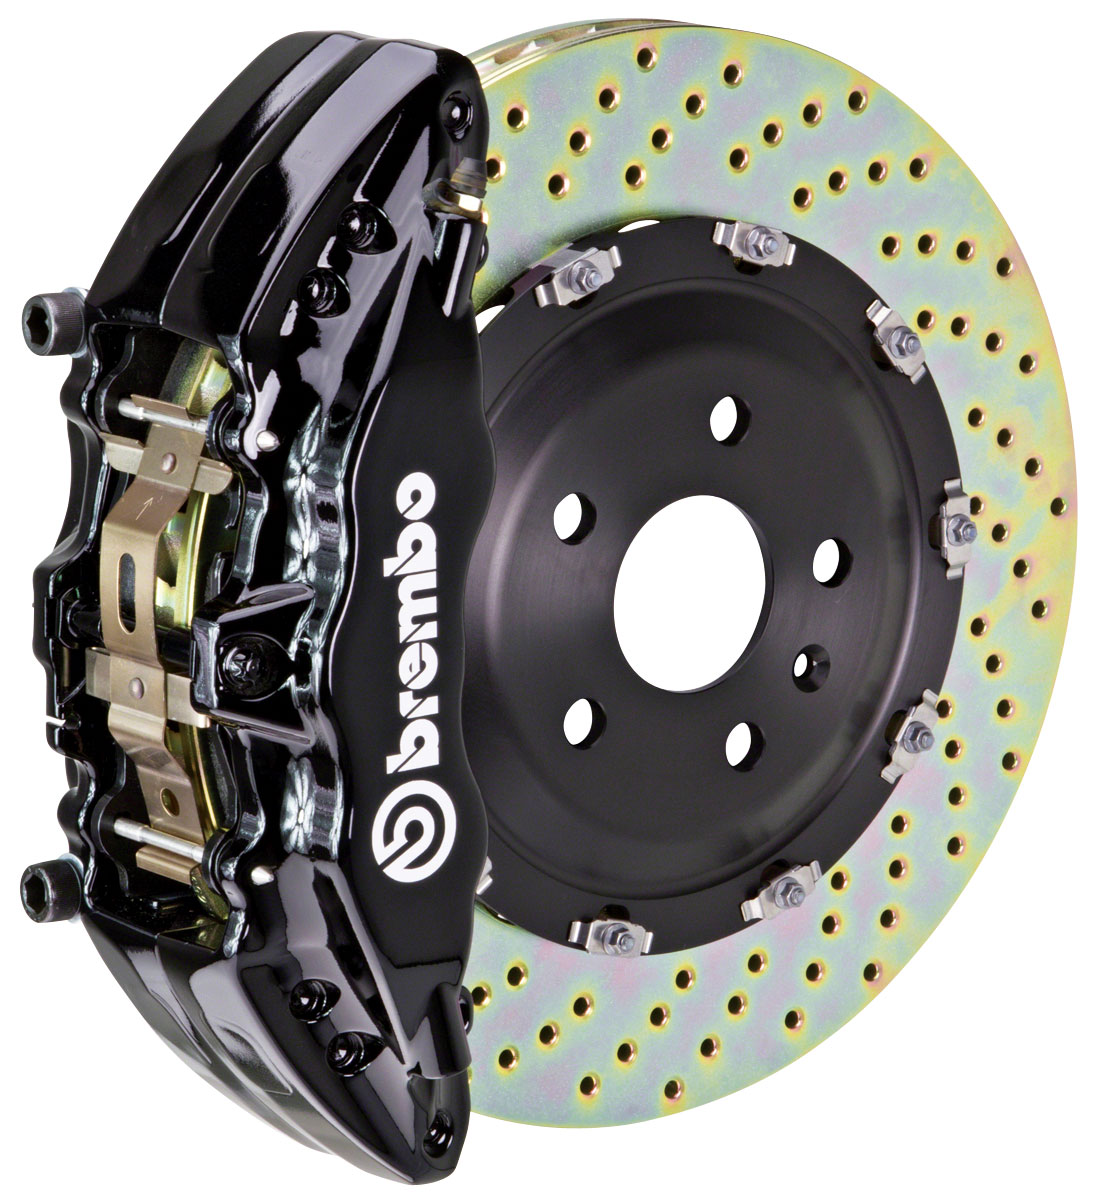 Brake Set, Brembo, 2002-06 Escalade/ESV/EXT, Front, 2pc 380mm Rtrs, 6P Calipers